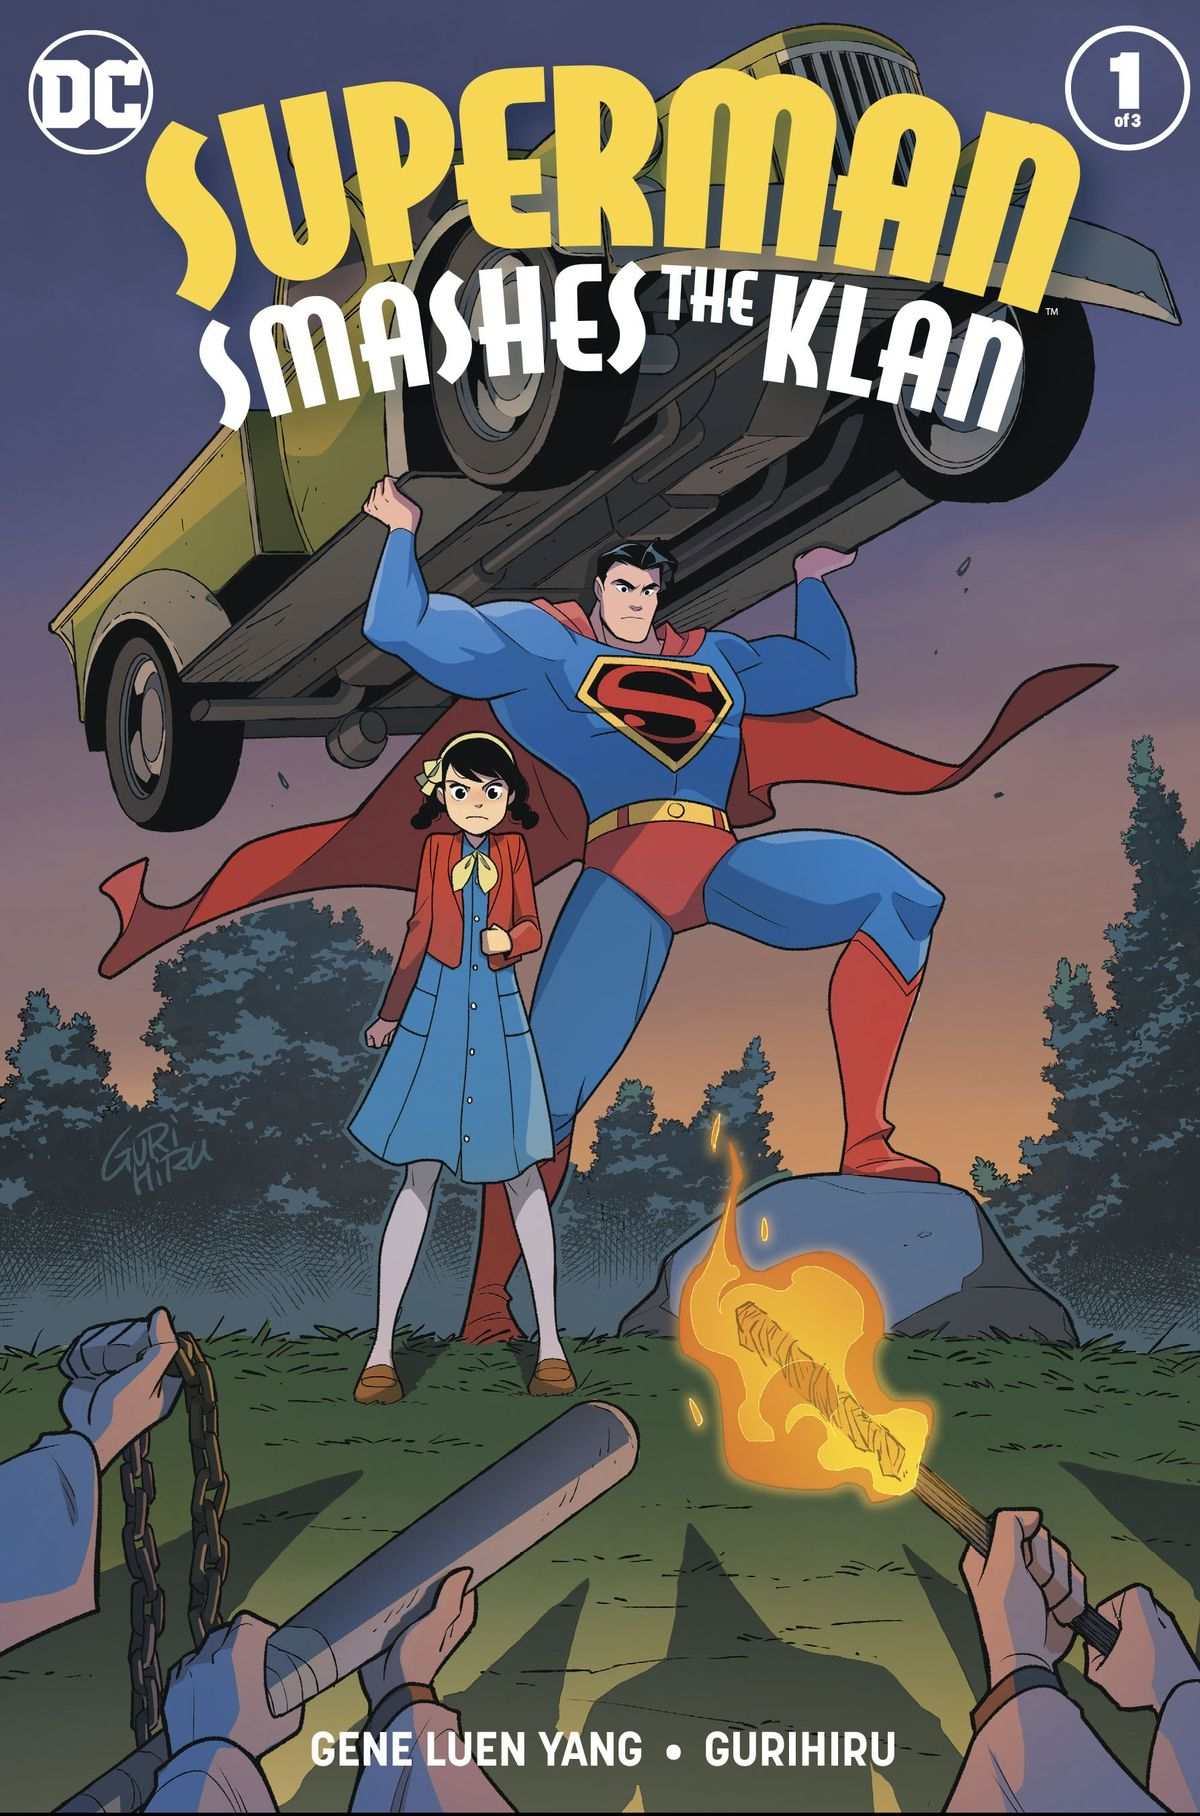 Superman hefts a car to throw at torch, chain, and bat-wielding enemies, alongside a young girl in a red jacket, on the cover of Superman Smashes the Klan #1, DC Comics (2019).